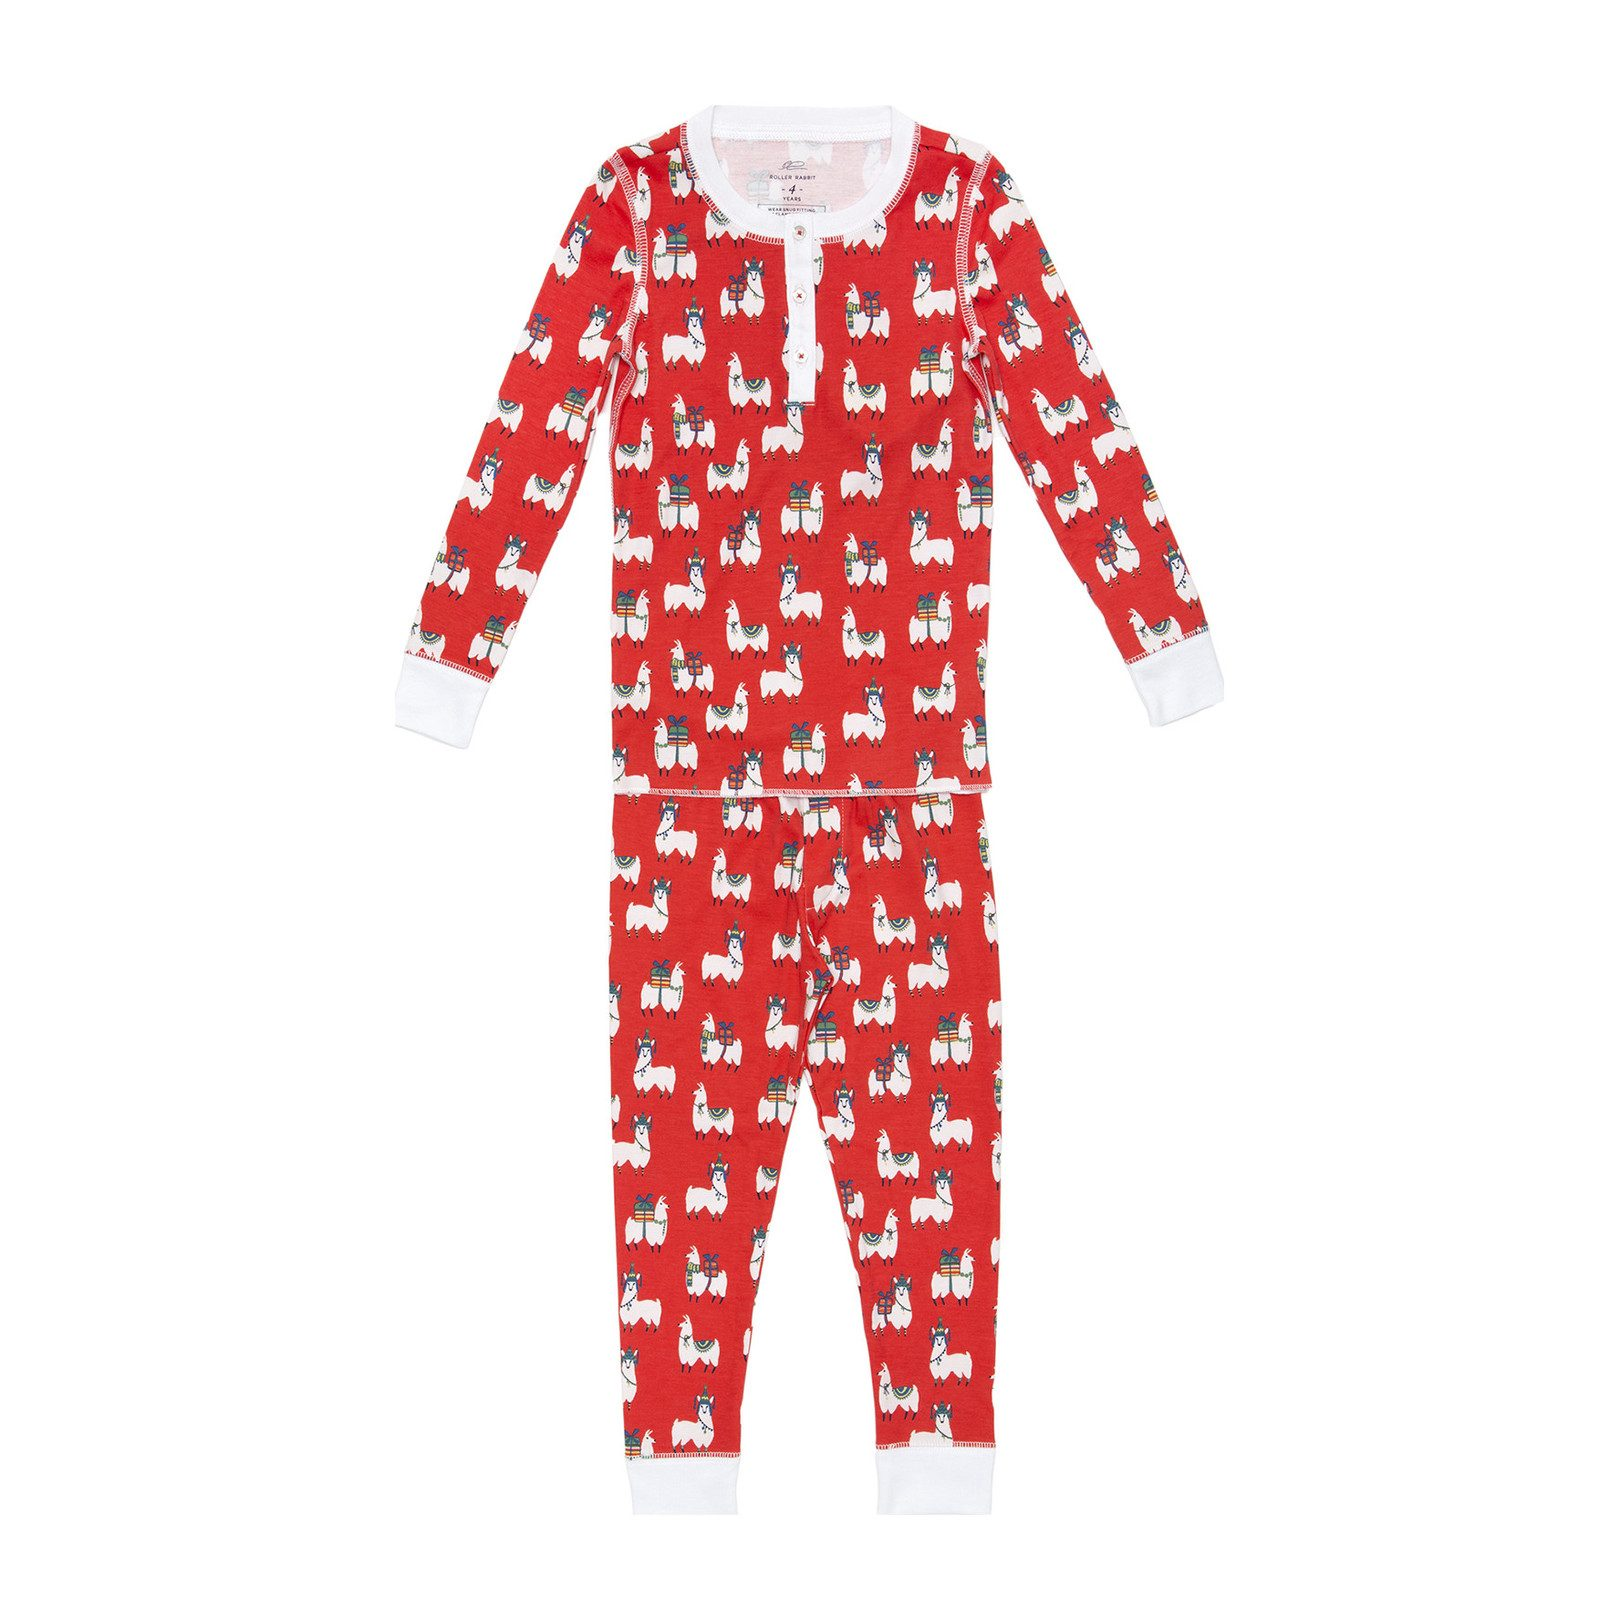 Modern Christmas pajamas for kids: Fa-La-La Llama Christmas pajamas | Maisonette